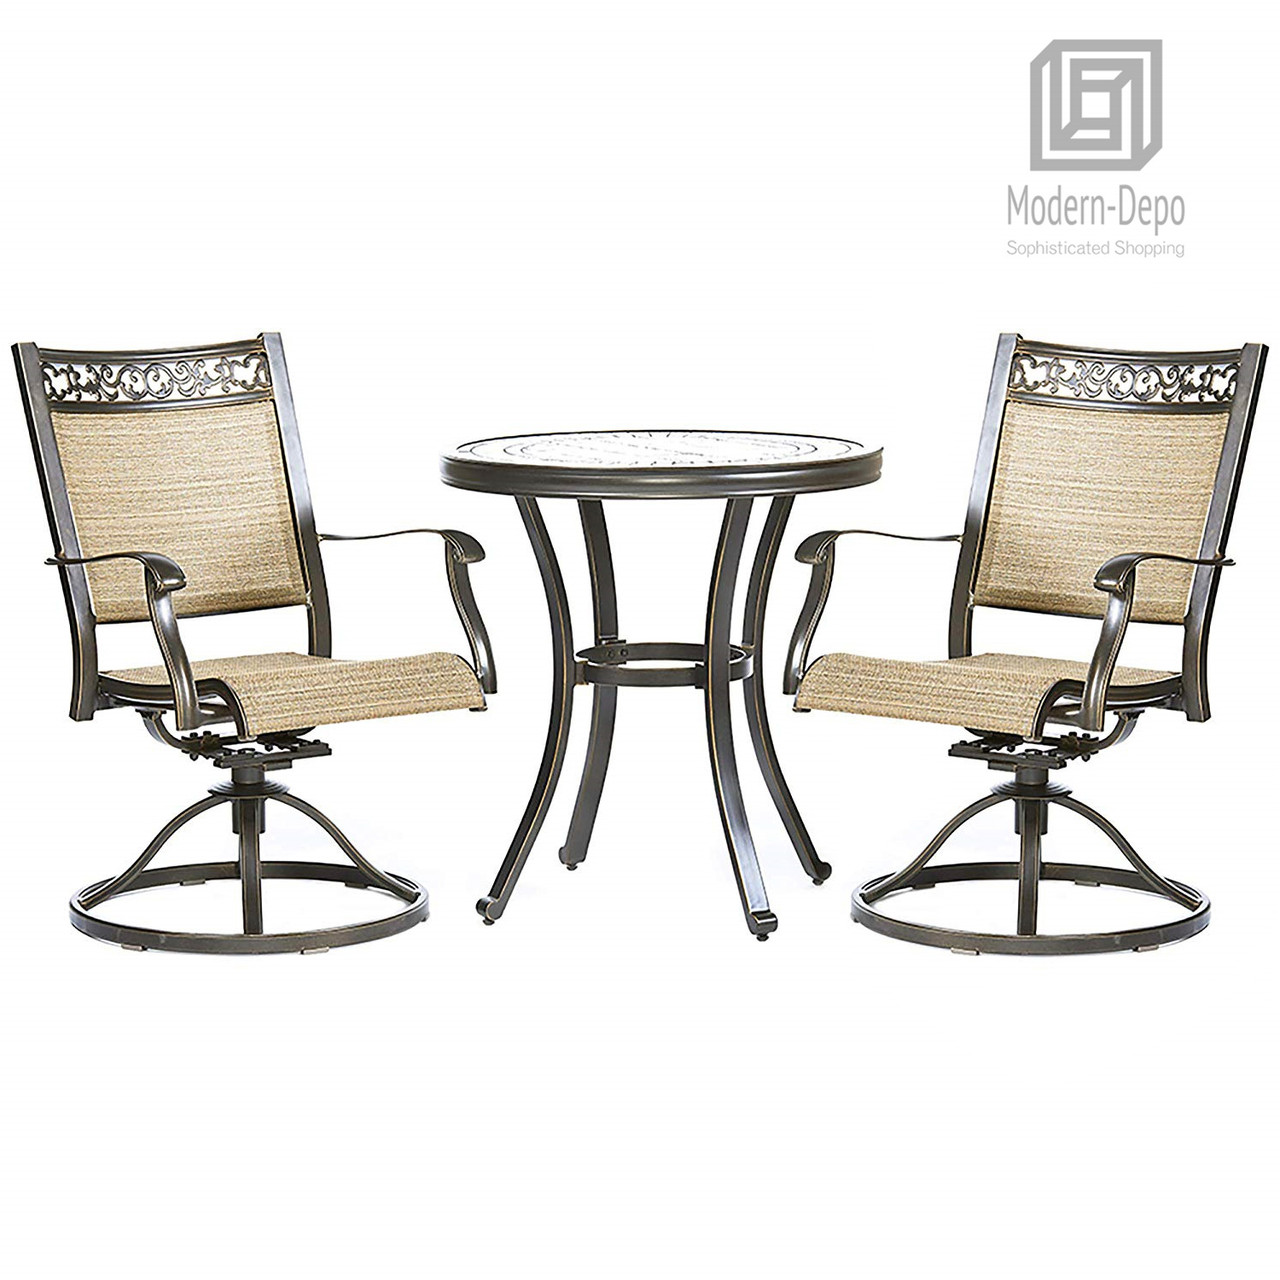 Pleasing 3 Piece Bistro Set Handmade Contemporary Round Table Swivel Rocker Chairs Garden Backyard Outdoor Patio Furniture Caraccident5 Cool Chair Designs And Ideas Caraccident5Info